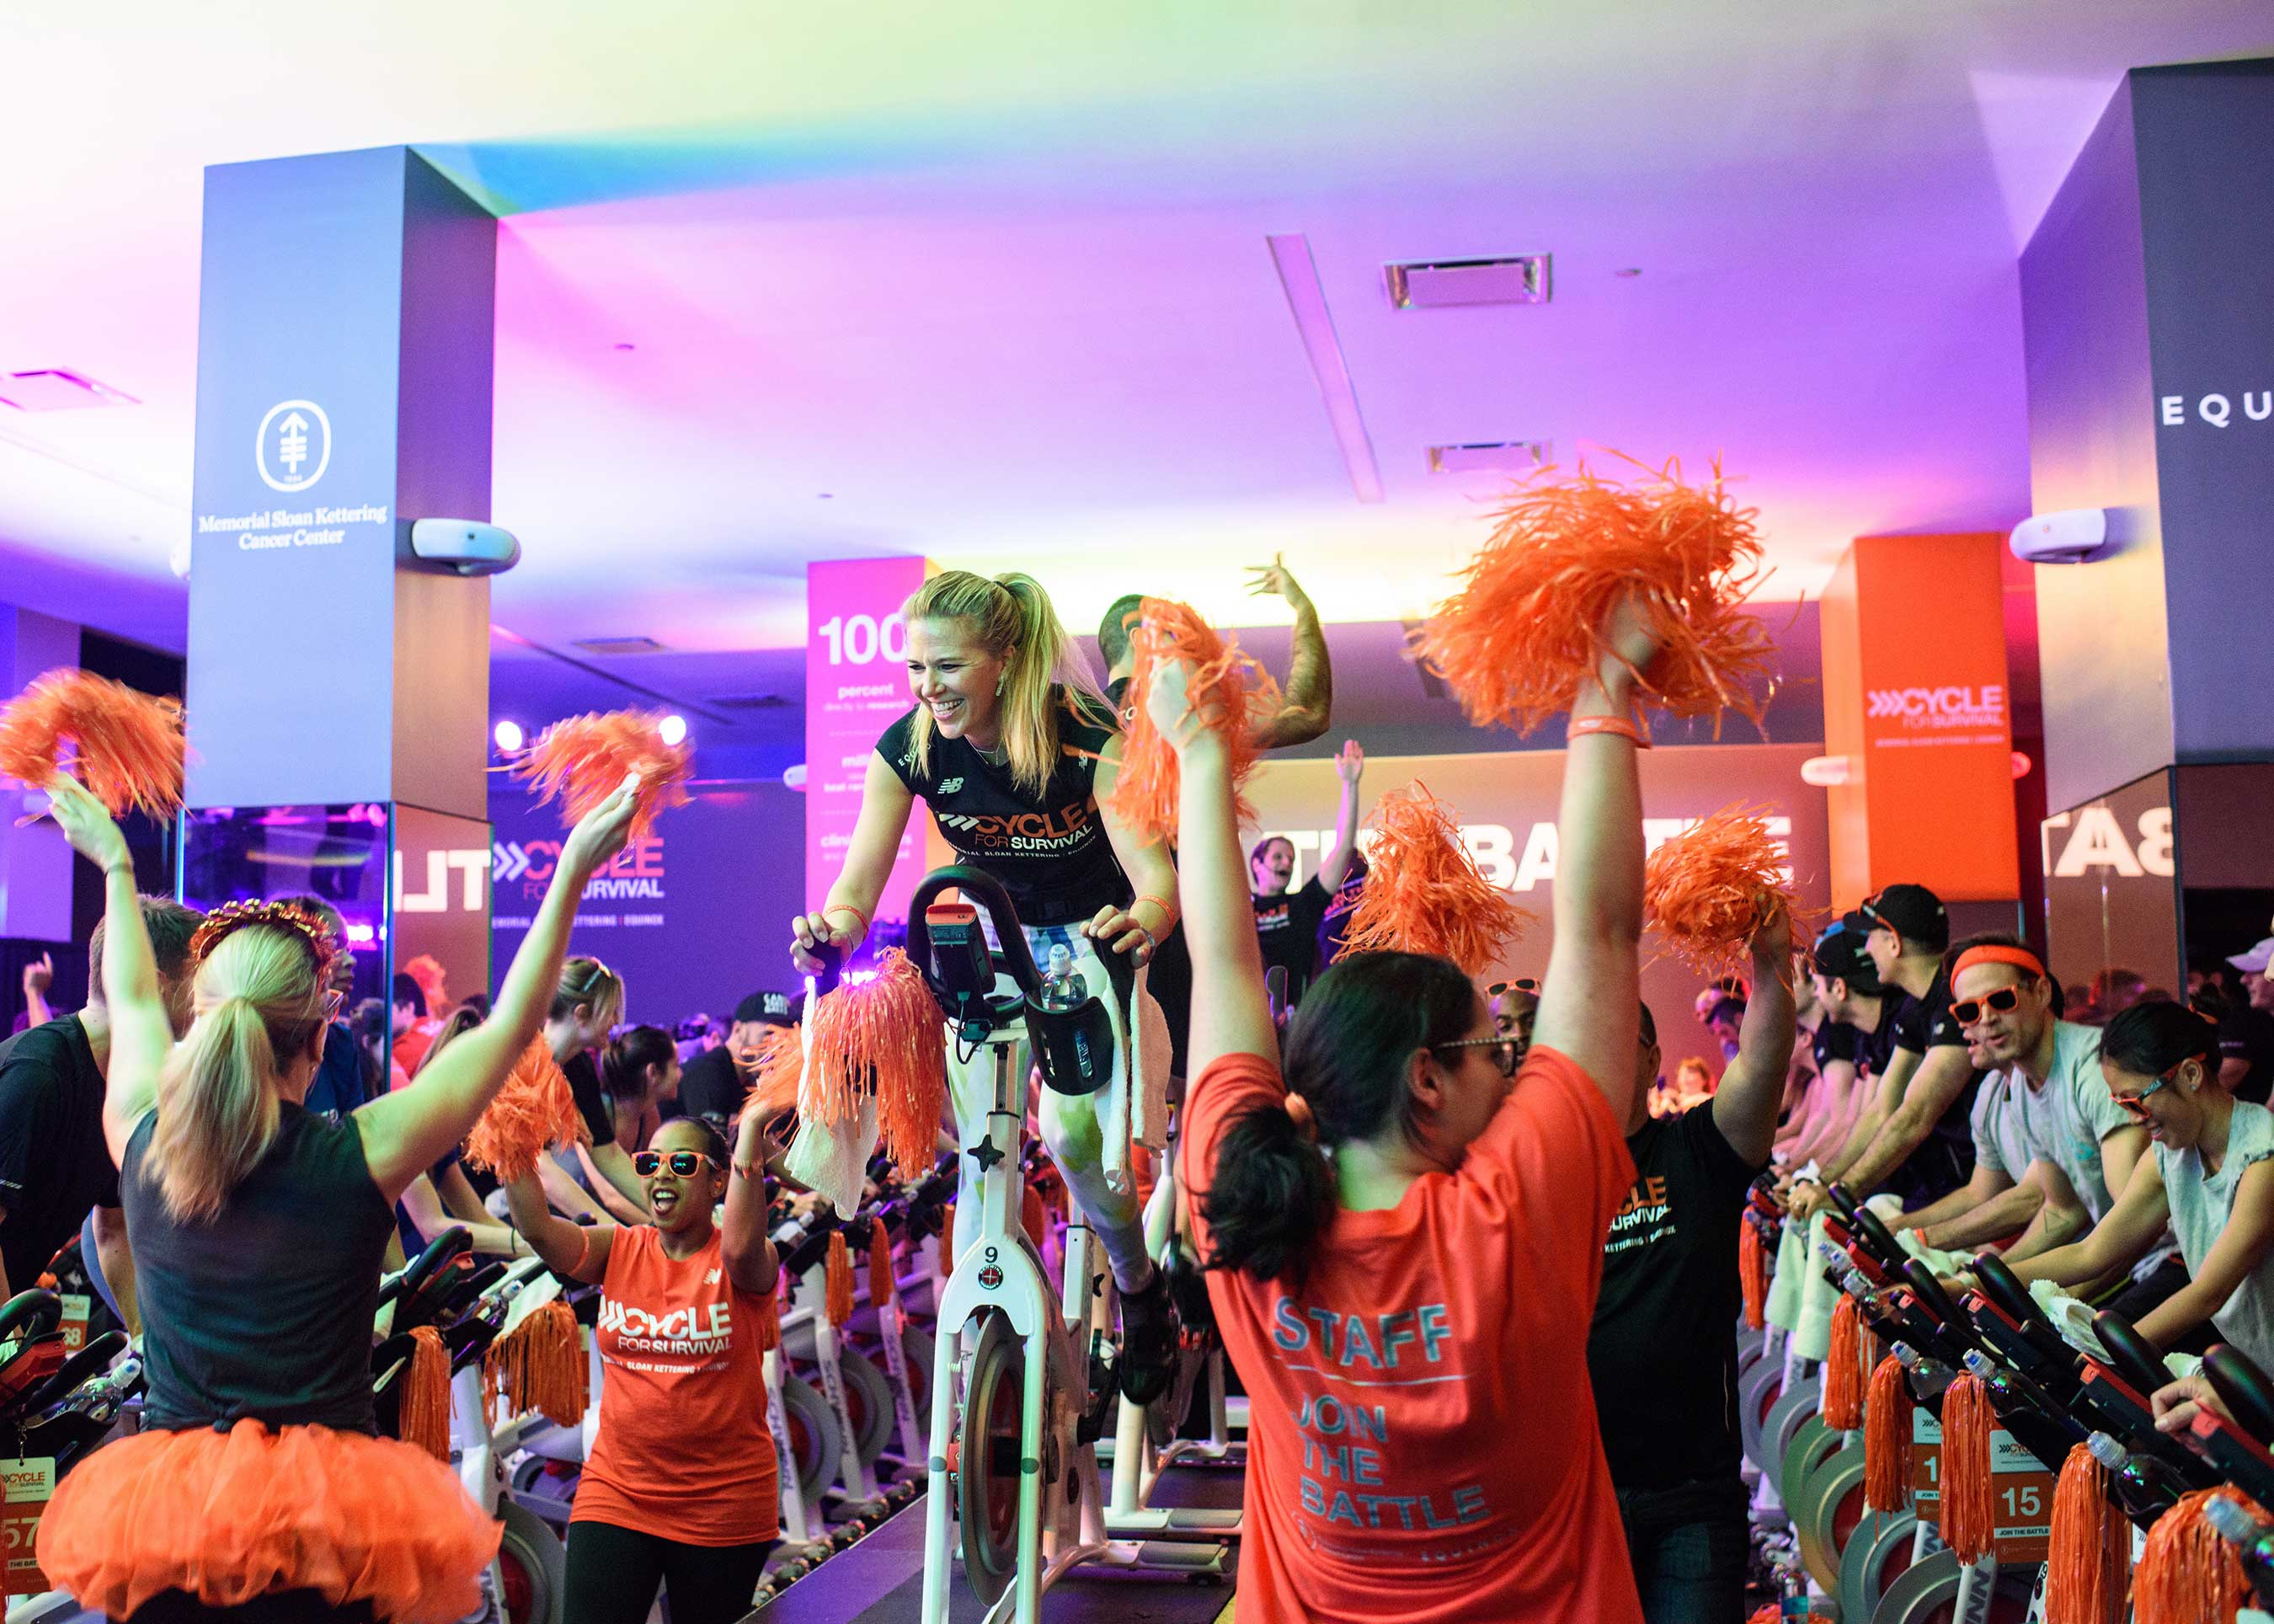 Cycle for Survival Equinox Instructor